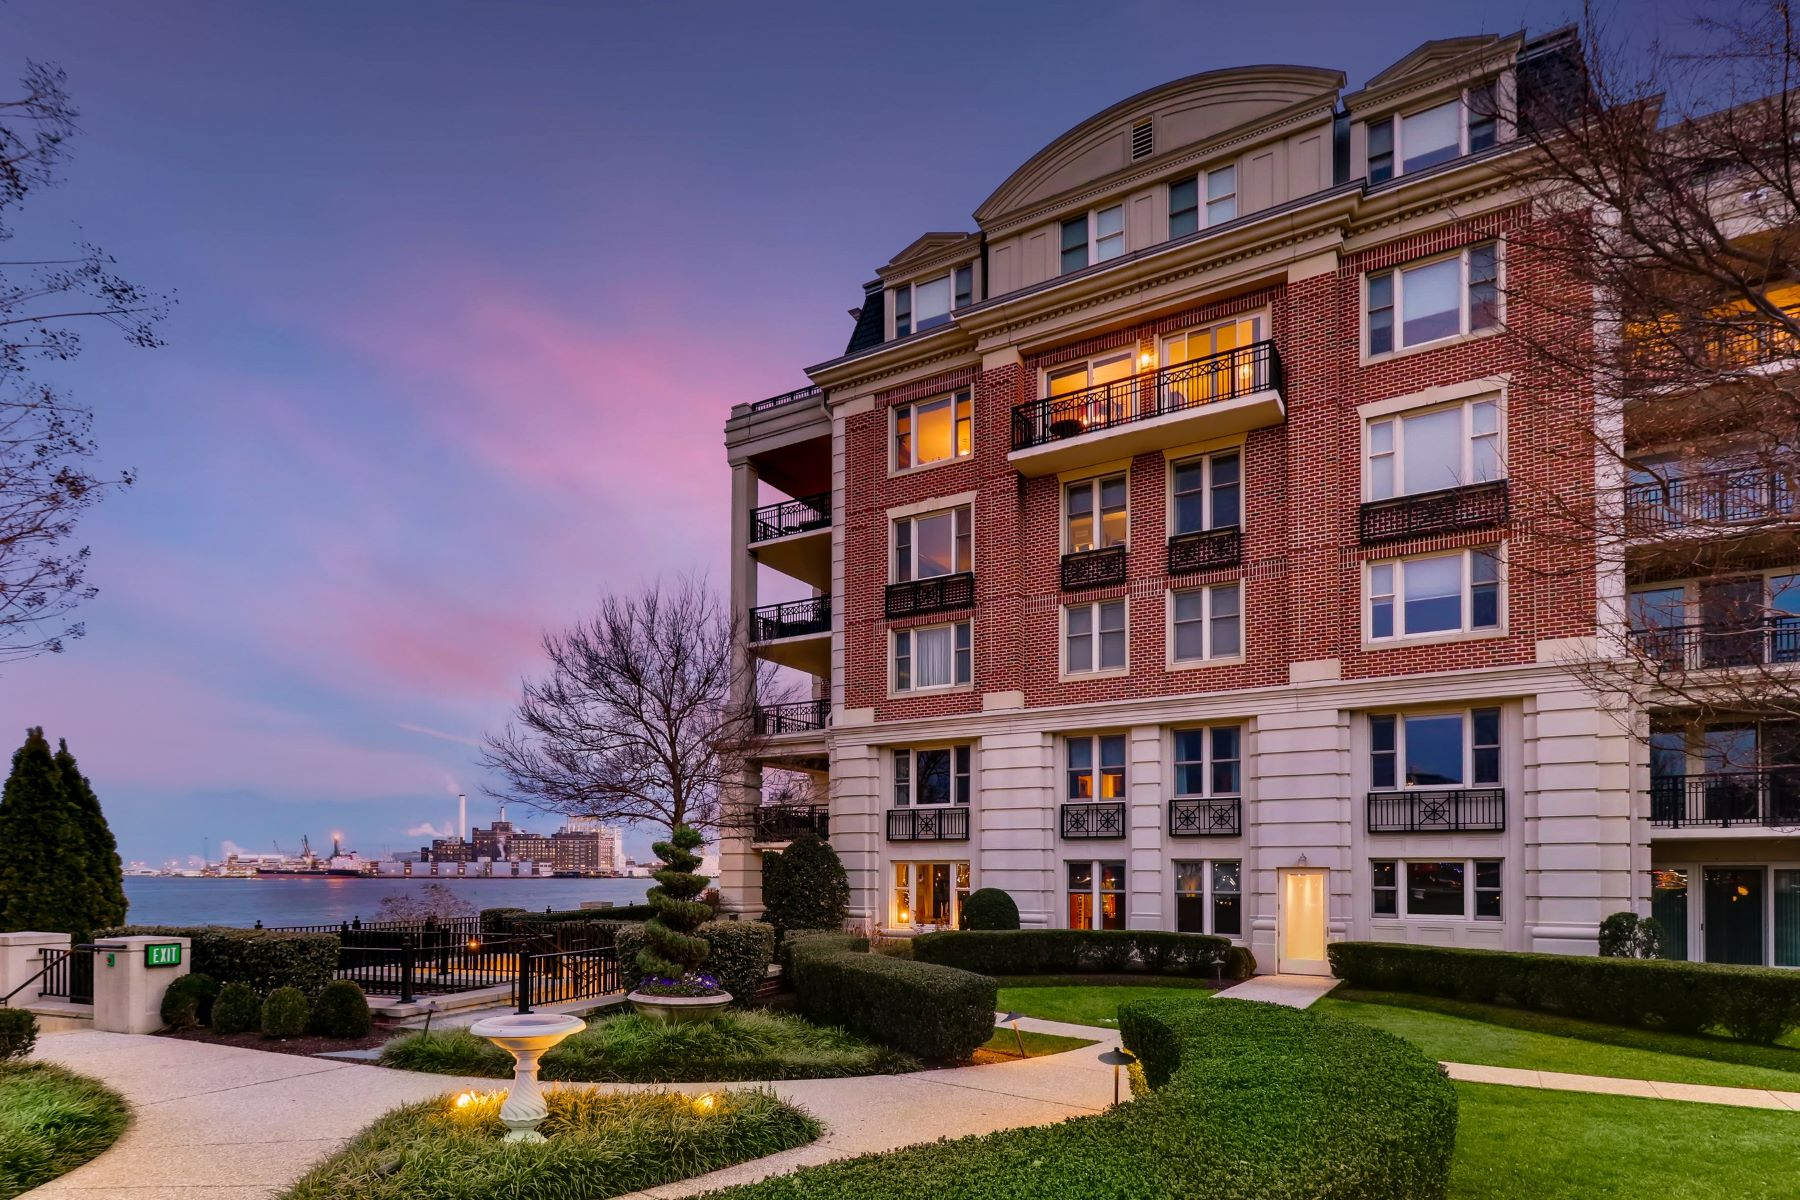 condominiums for Active at The Ritz-Carlton Residences 801 Key Highway #T-54 Baltimore, Maryland 21230 United States